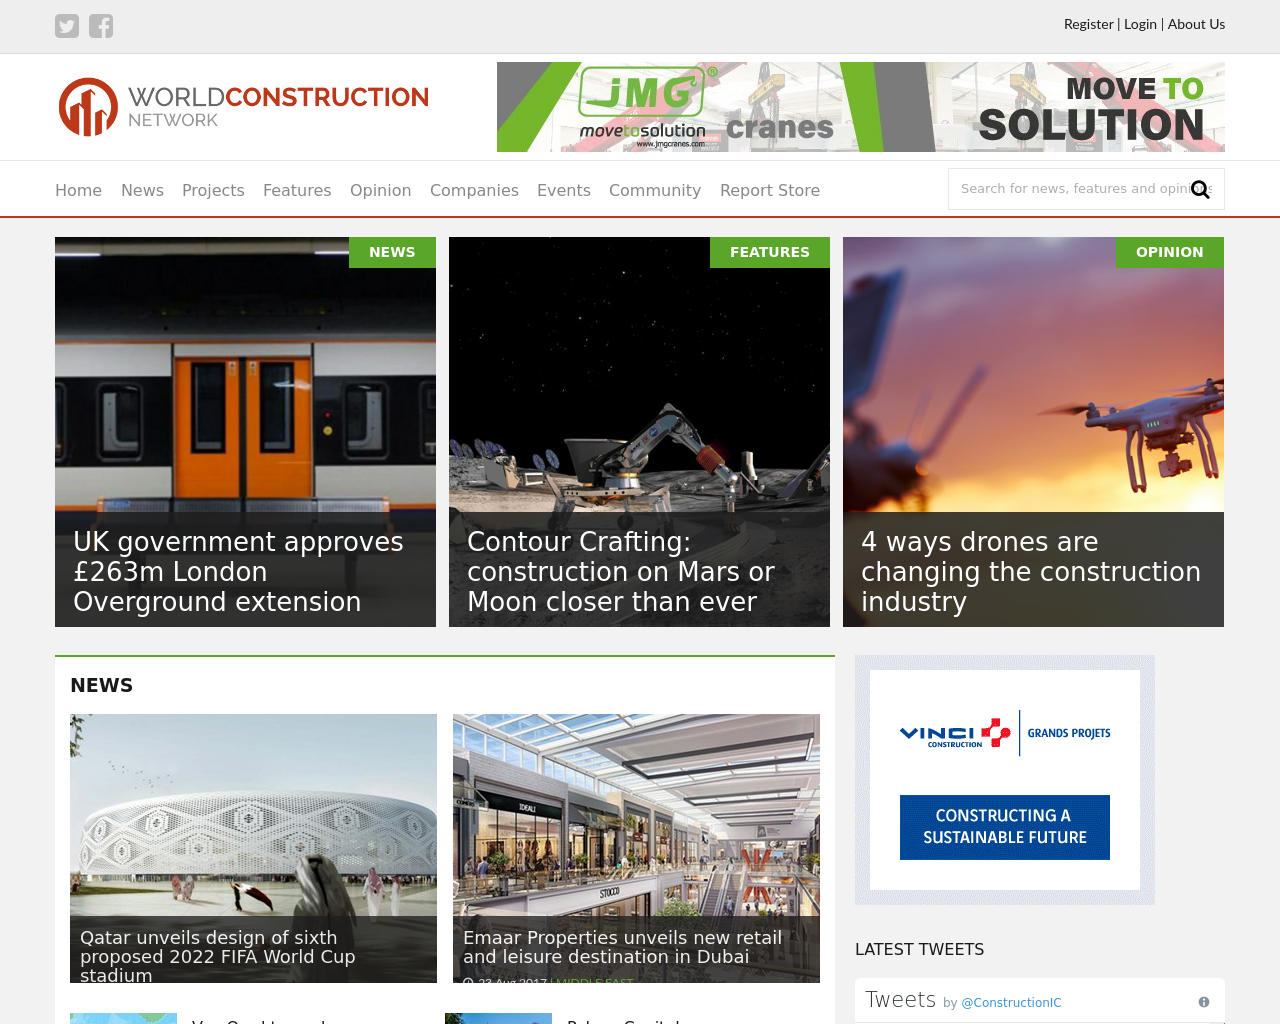 World-Construction-Network-Advertising-Reviews-Pricing